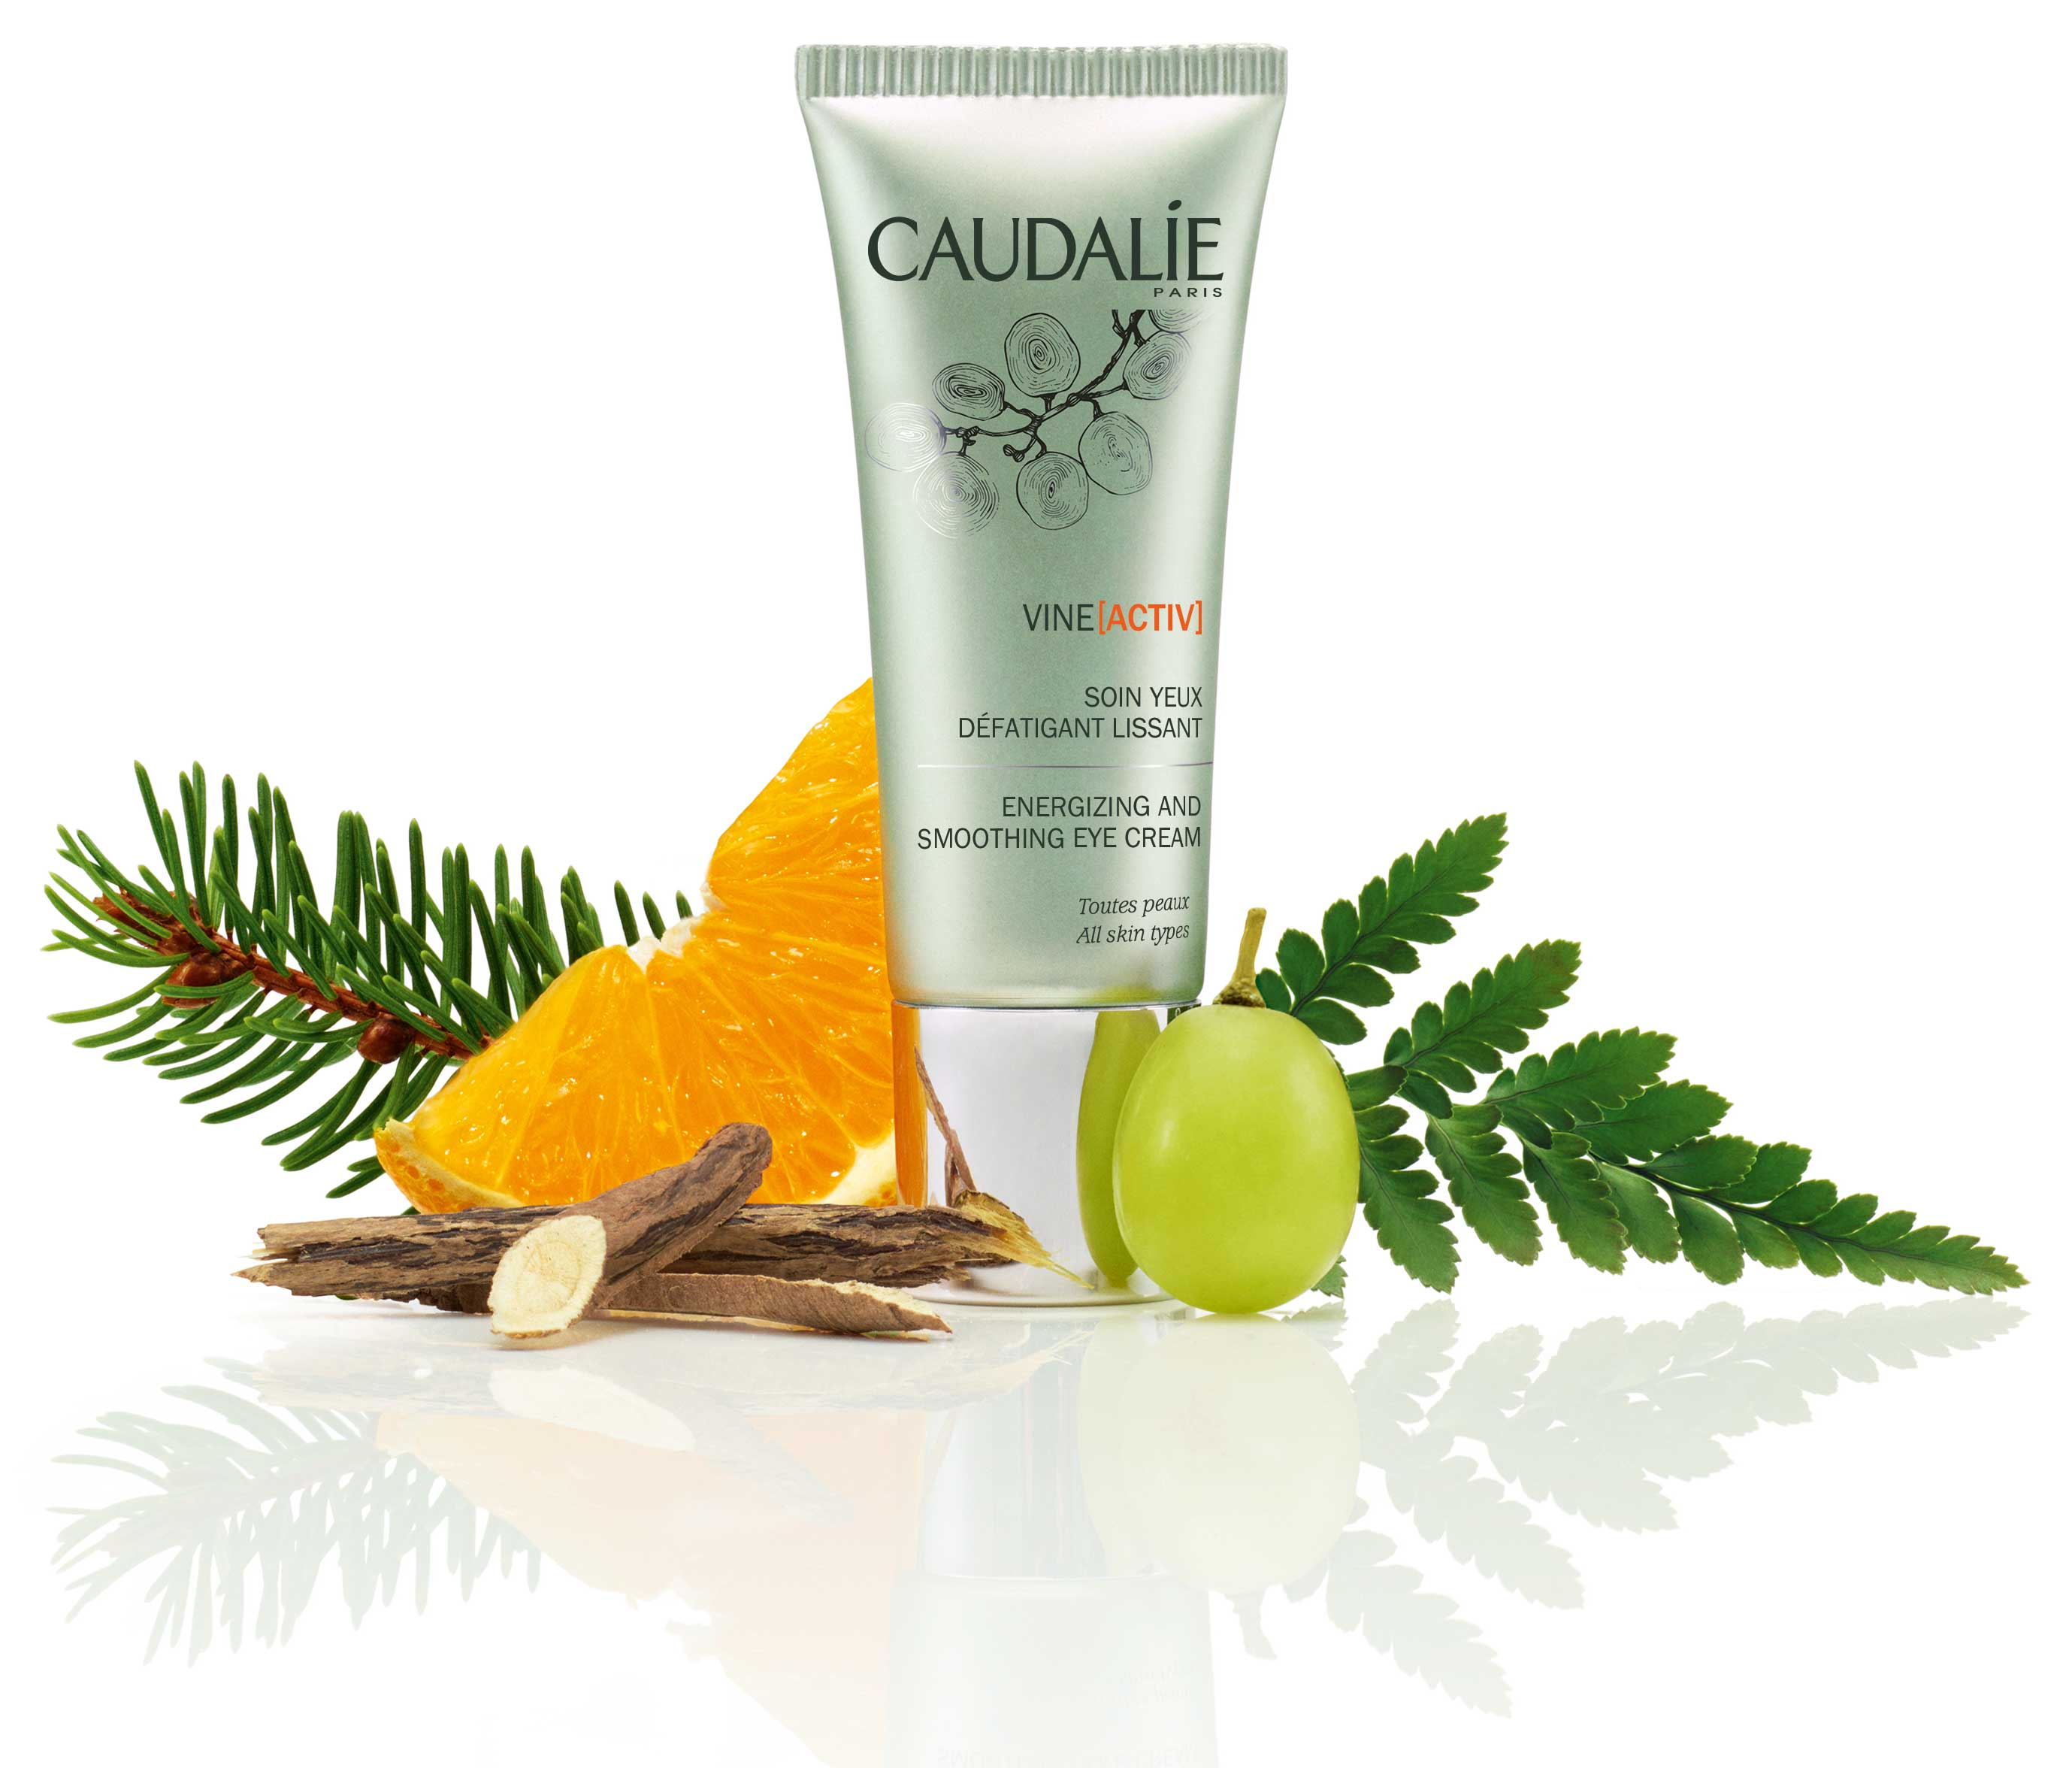 caudalie-vinesource-energizing-and-smoothing-eye-cream